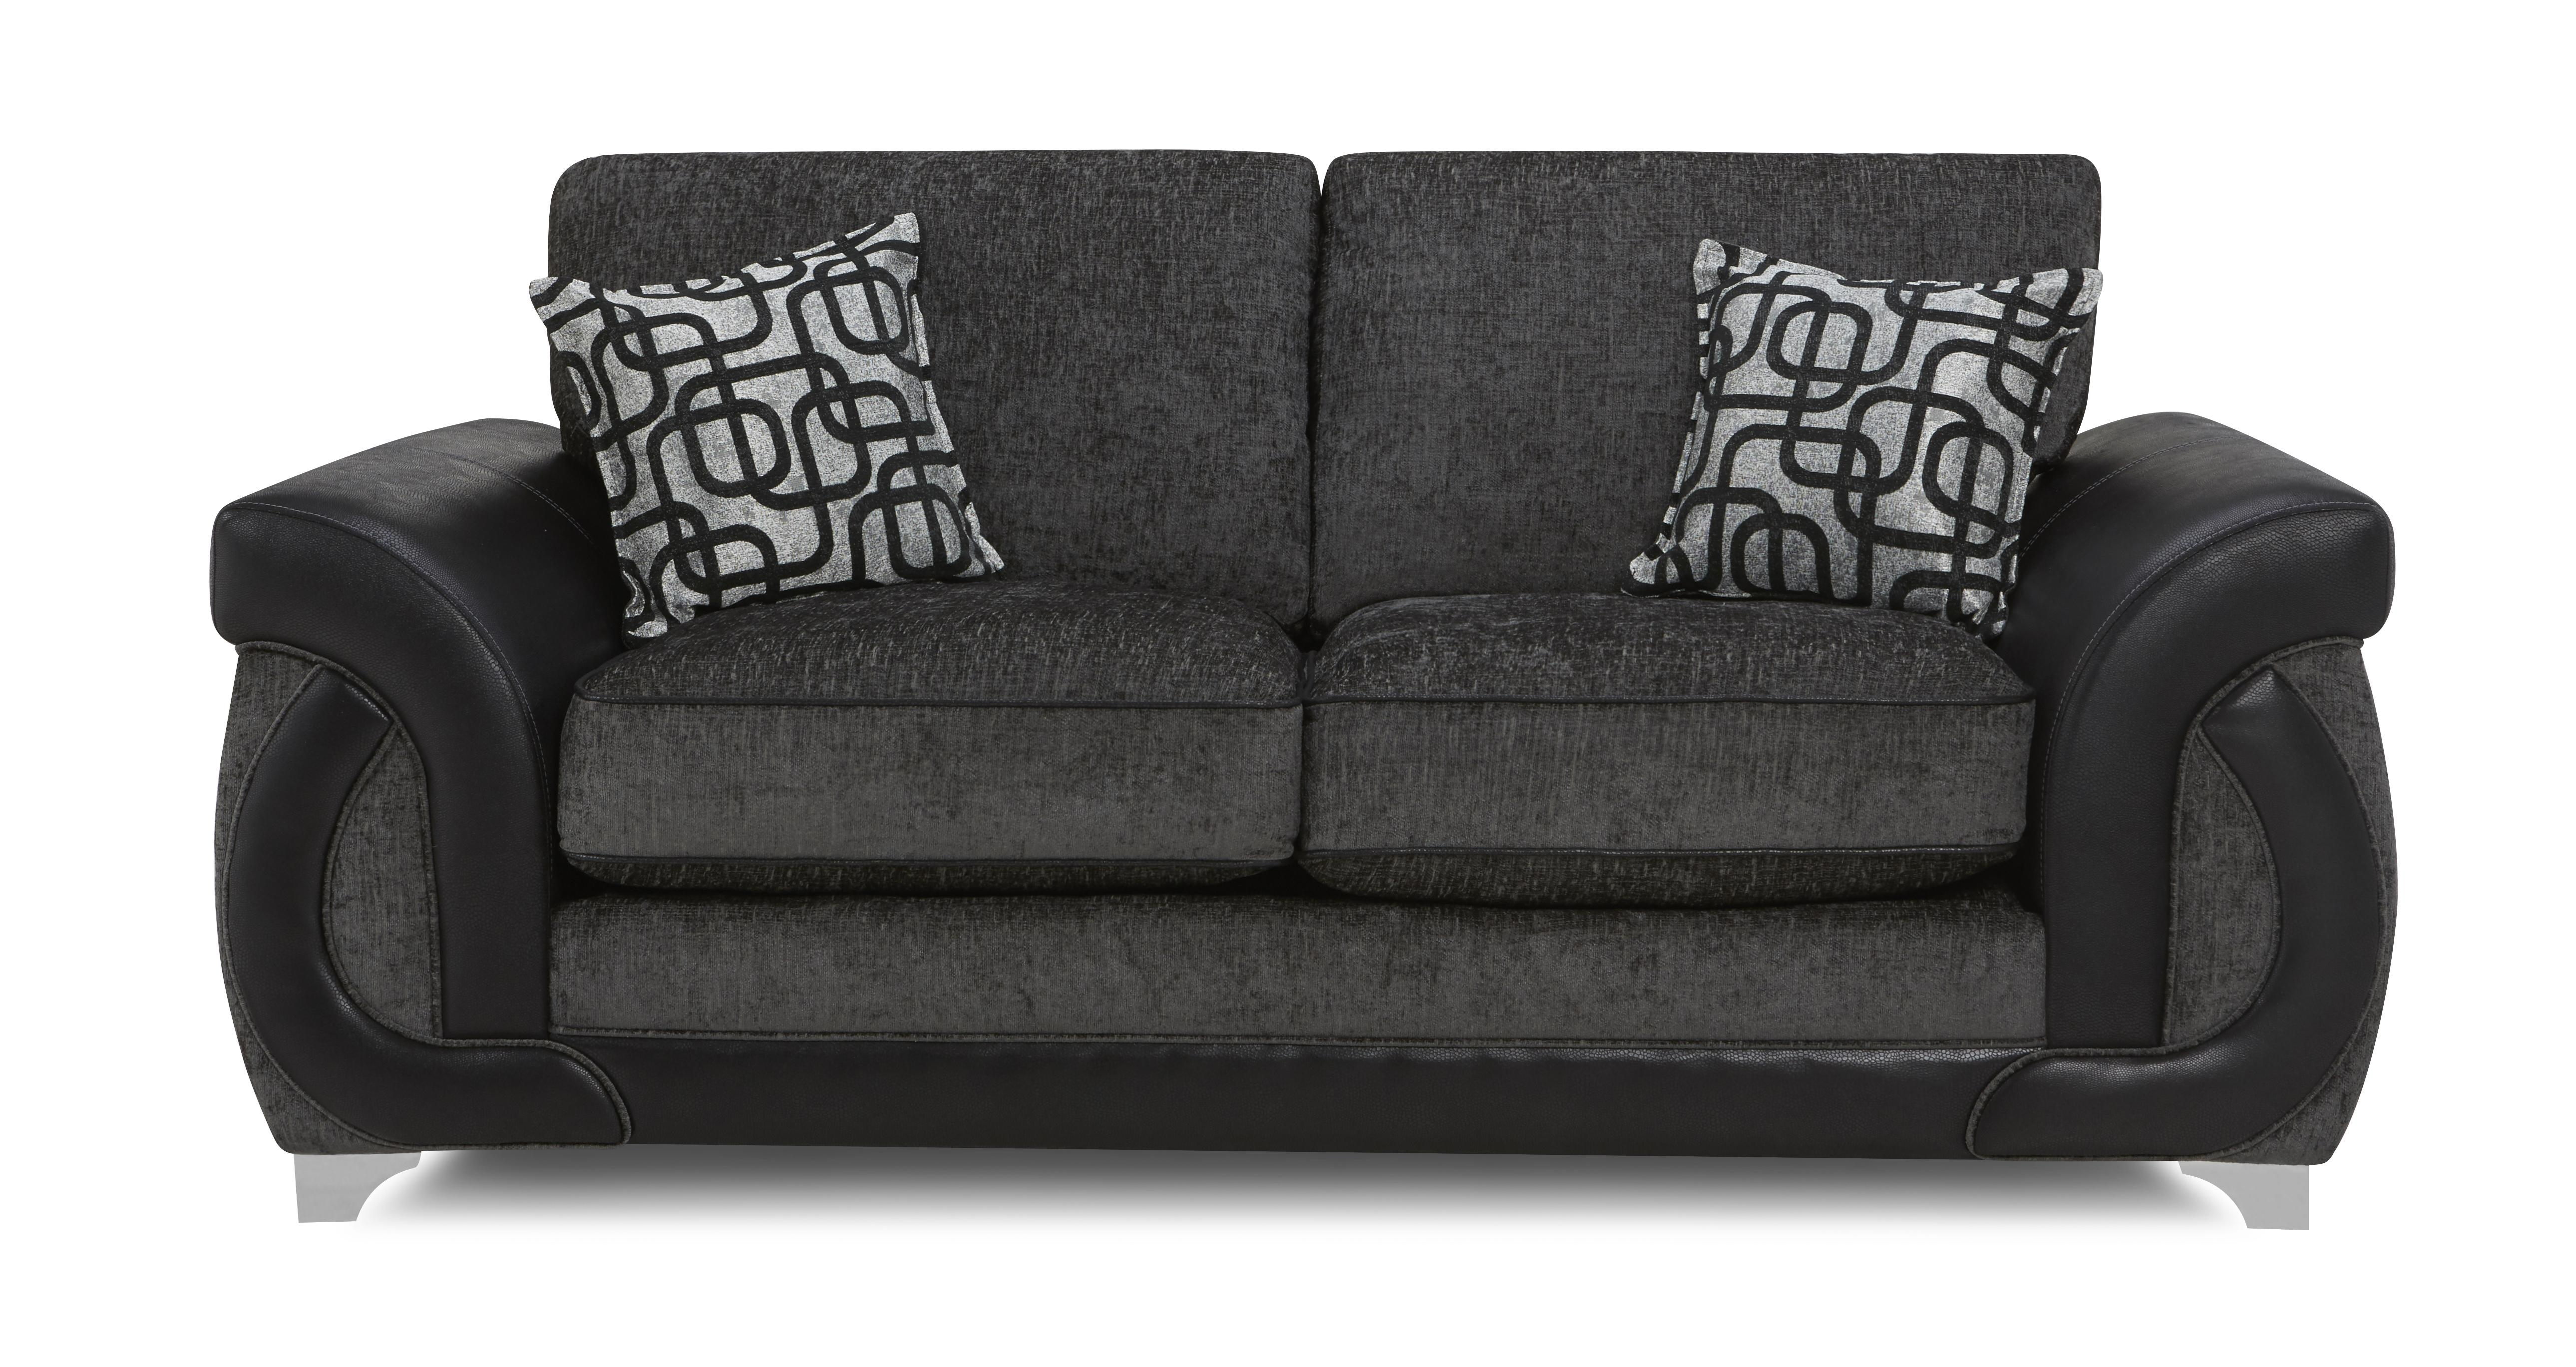 dfs recliner sofa bed kirby vacuum bellini charcoal large 2 seater formal back deluxe